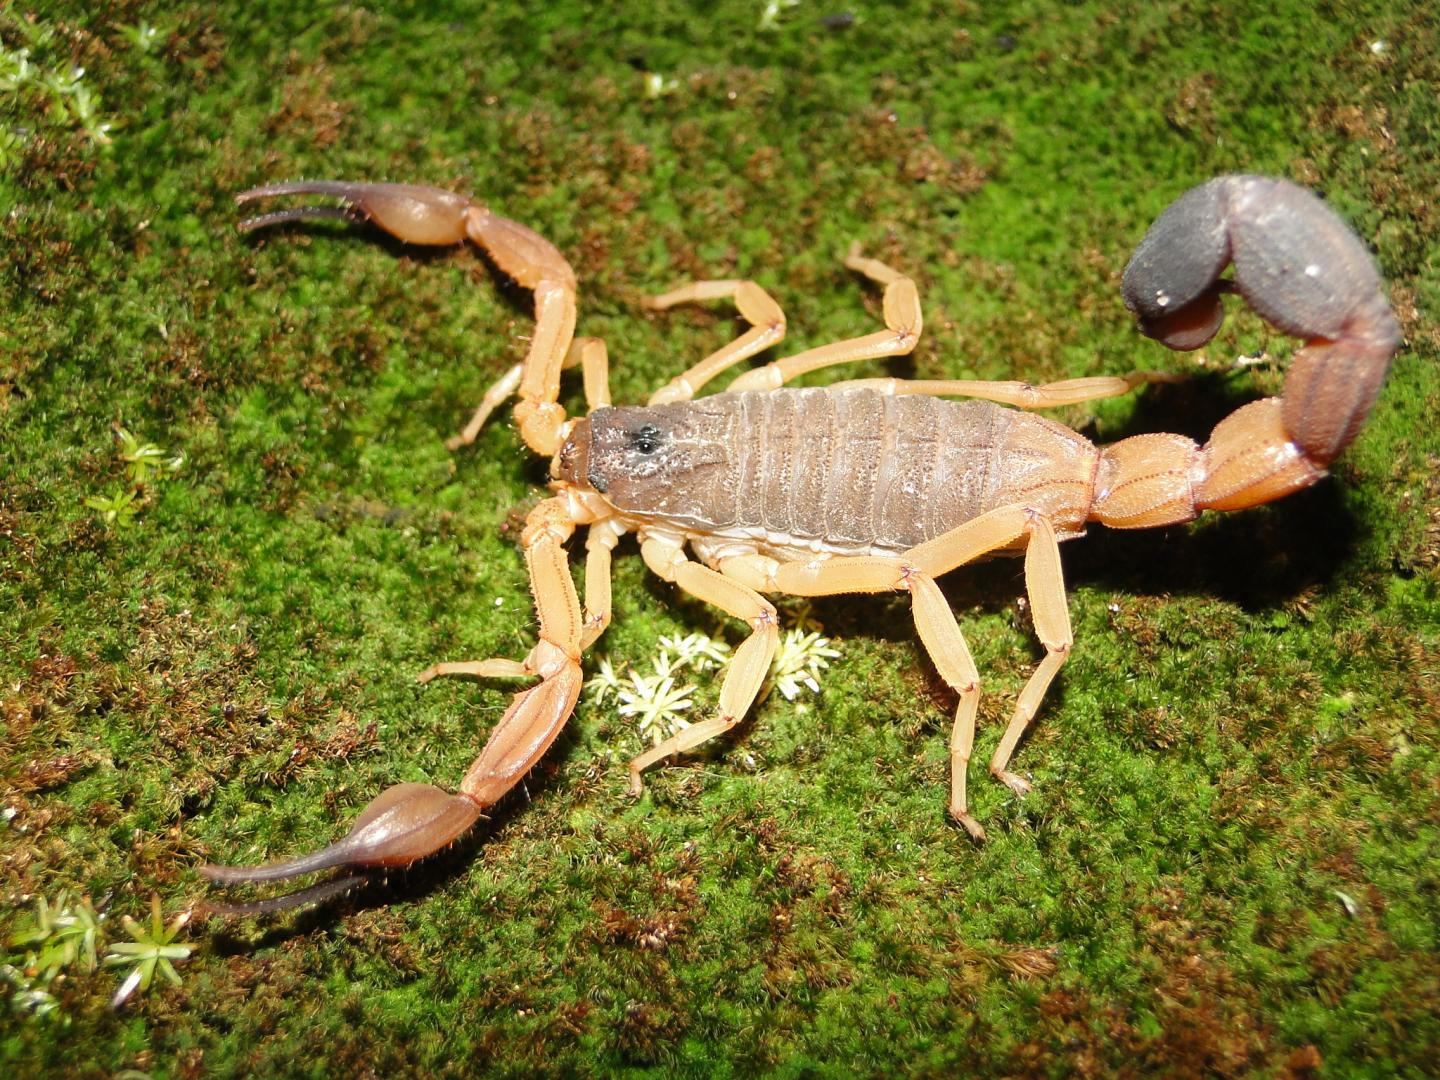 Known Species of the Club-Tailed Scorpion Group